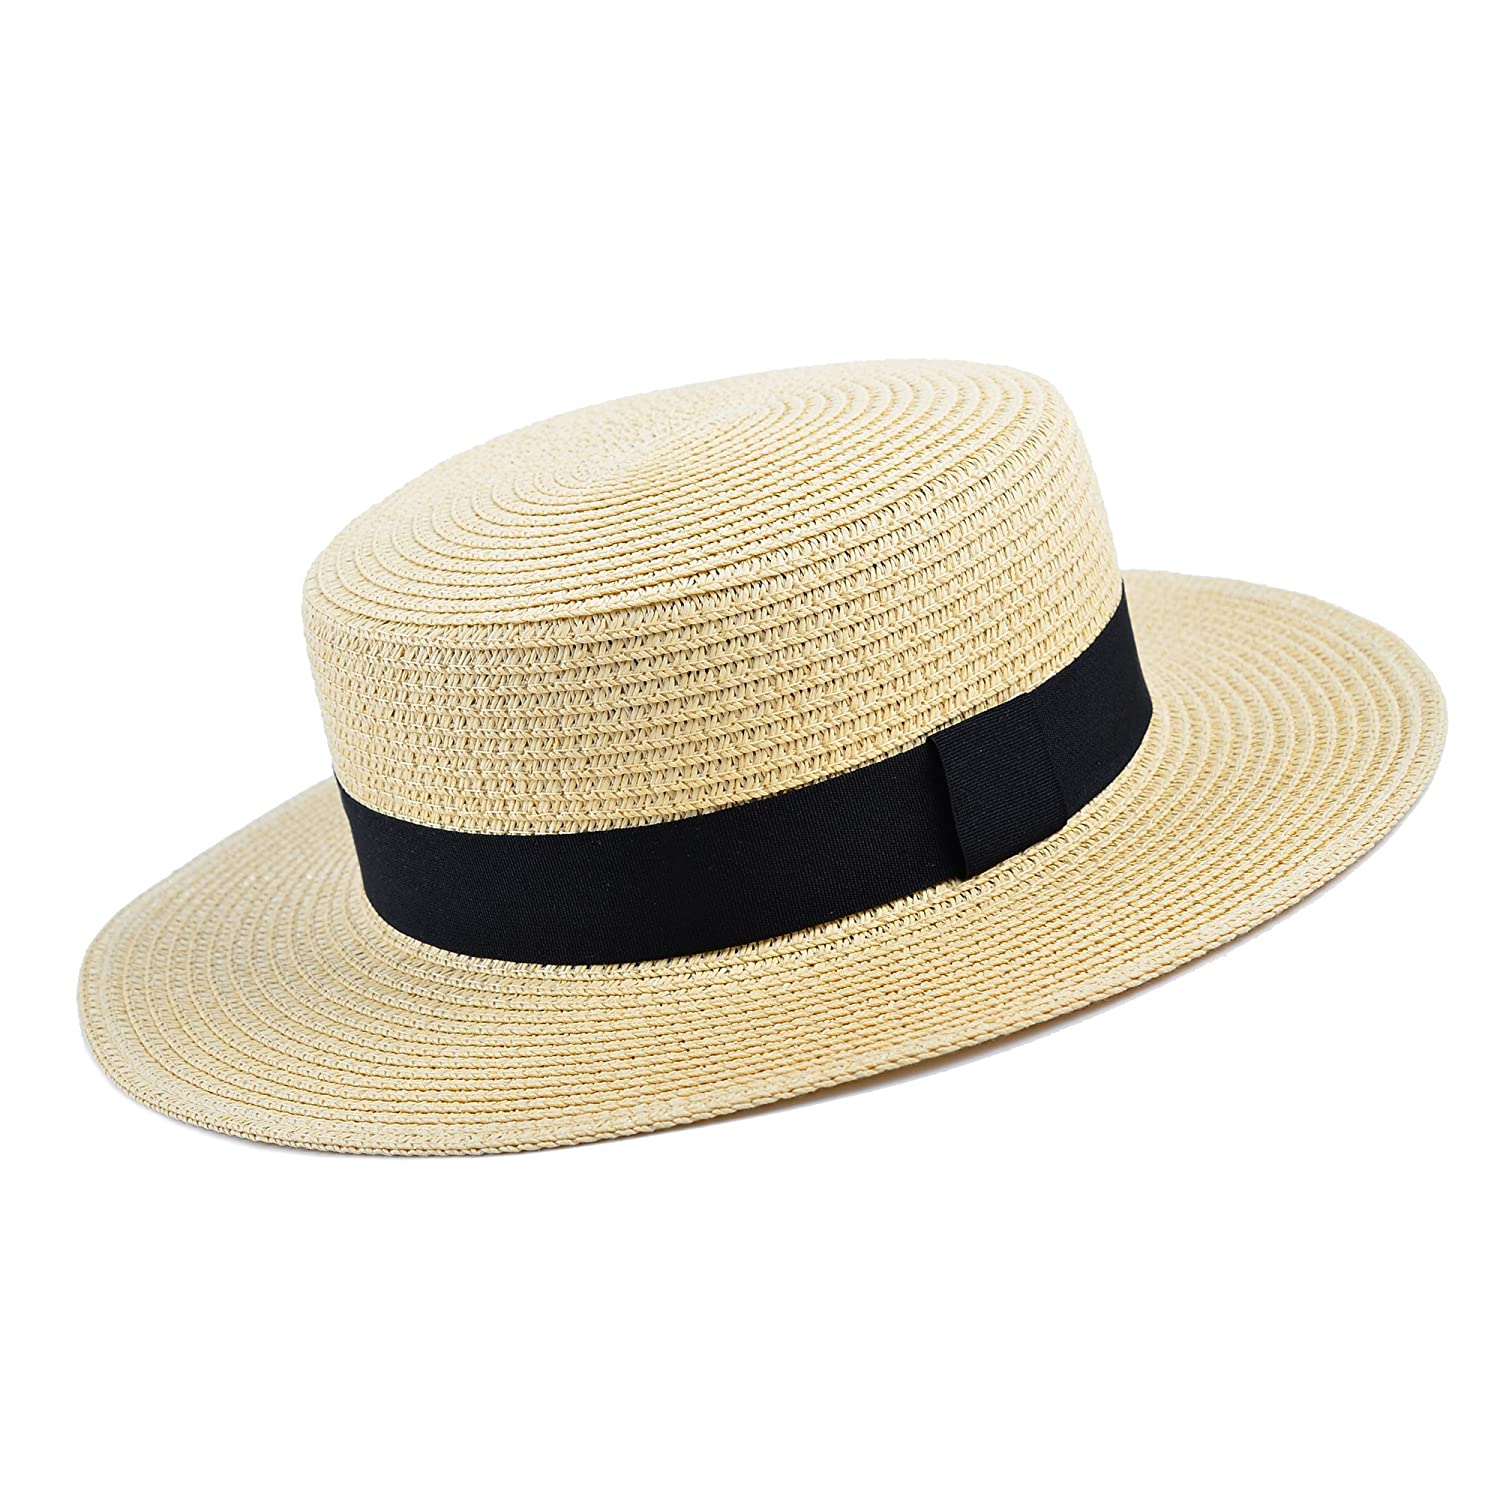 378f6cef32c MATCH MUCH Straw Boater Hat (Cream Hat Wide Brim Knot Band) at Amazon Men s  Clothing store